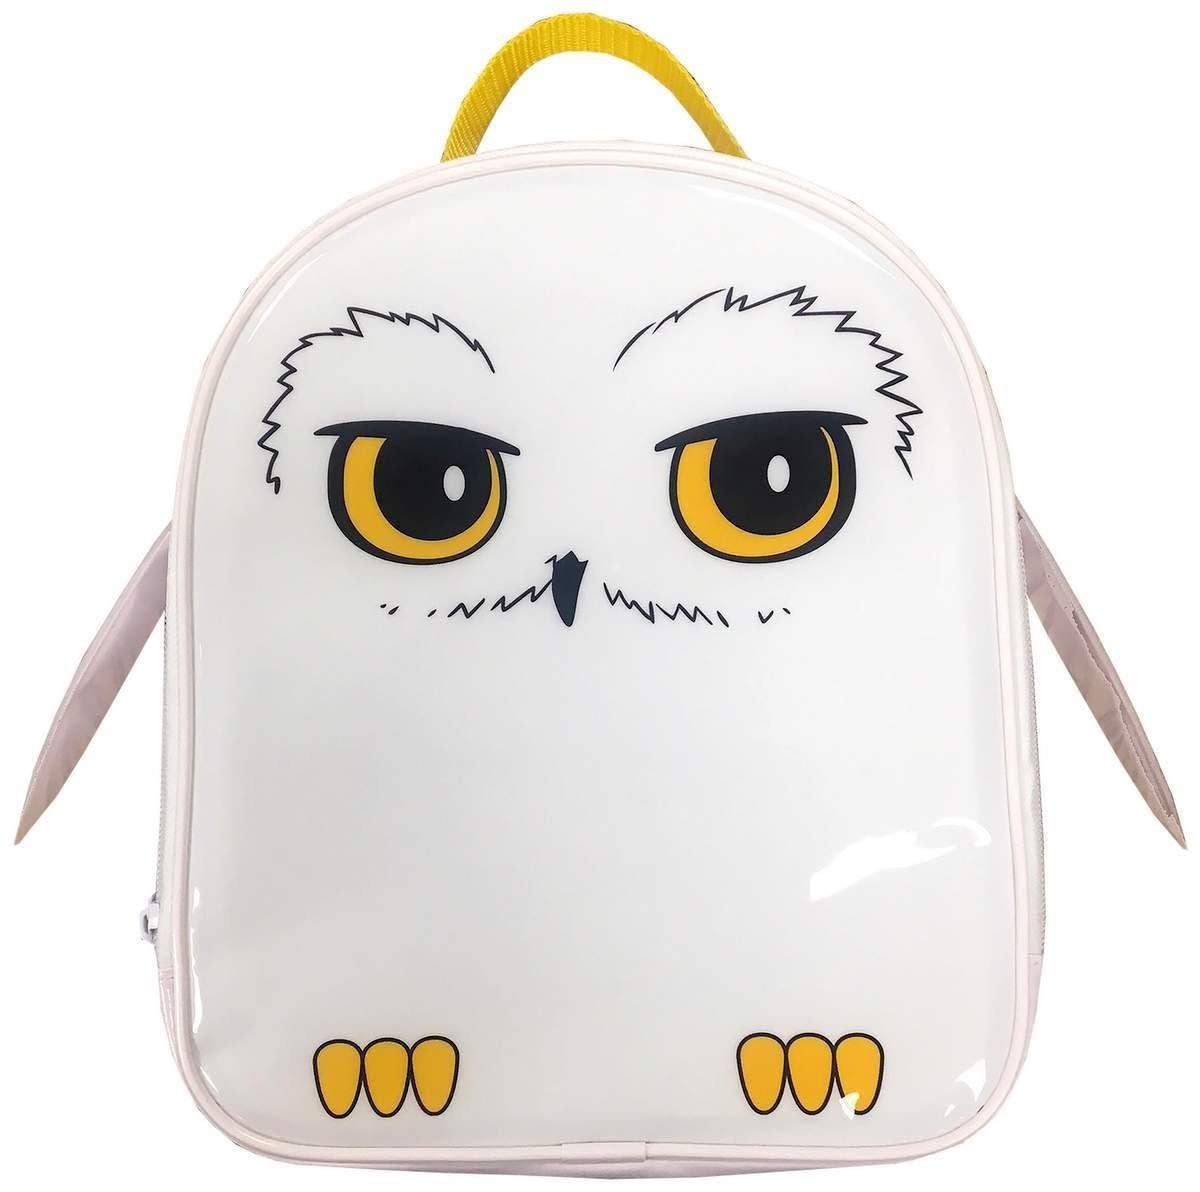 Harry Potter 'Hedwig The Owl' Insulated Lunch Box Bag